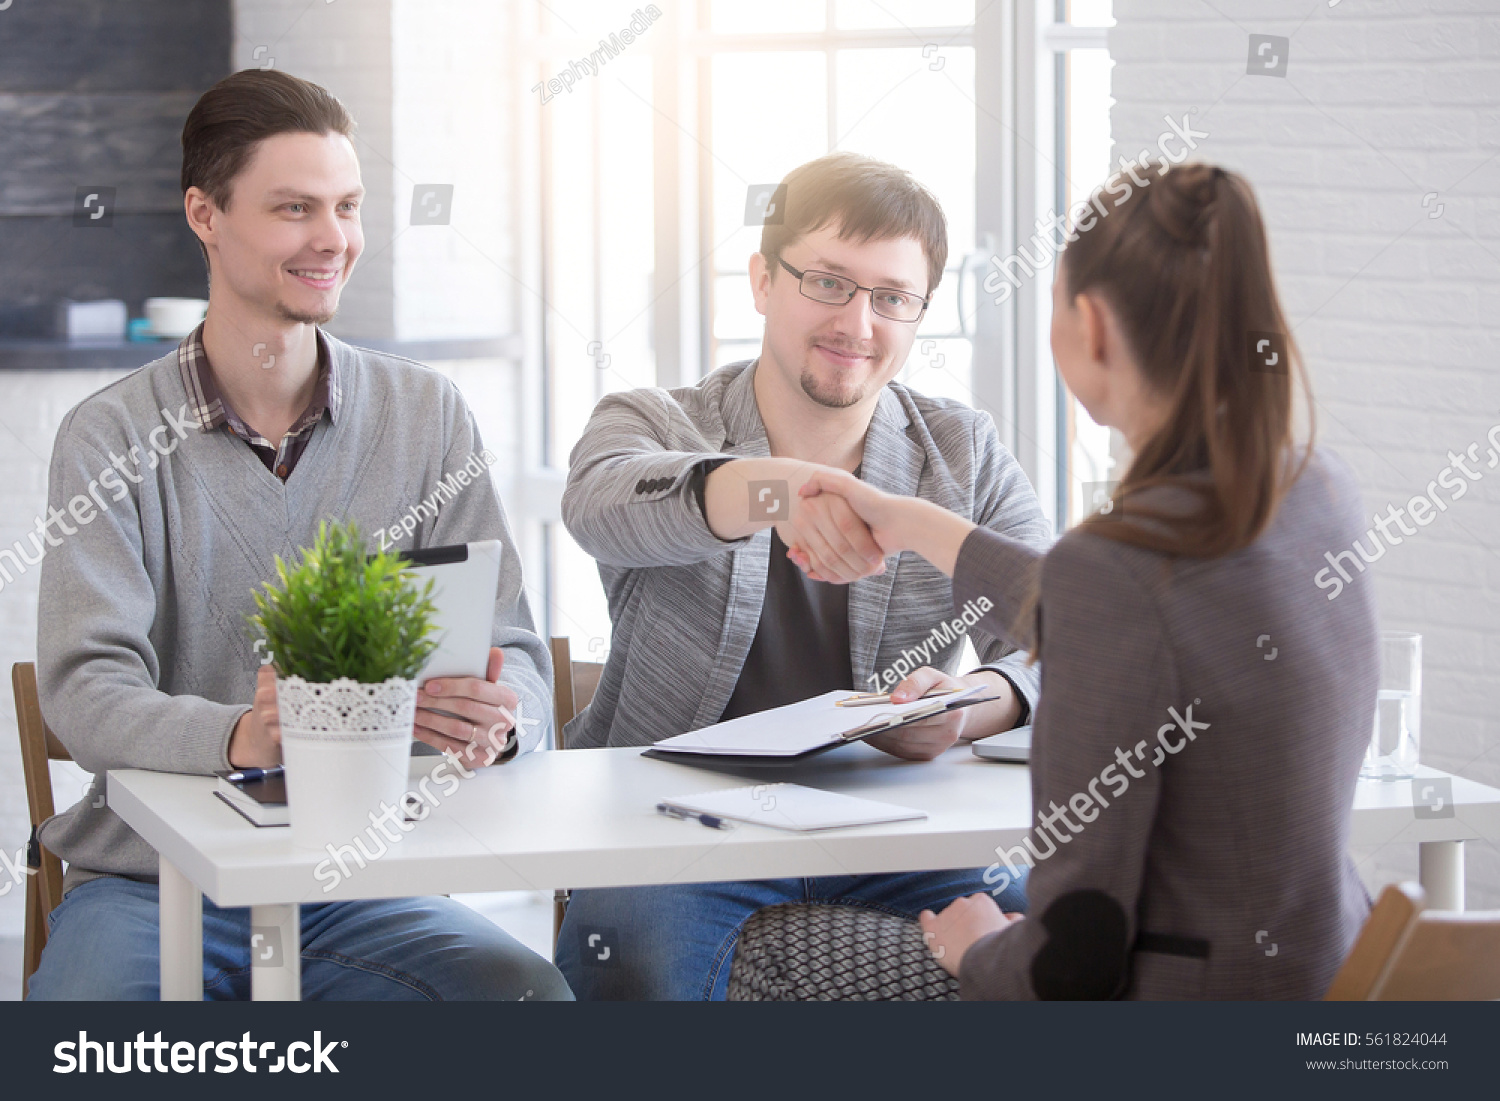 Business people handshake greeting deal at work photo free download - Young Woman Arriving For A Job Interview Business People Handshake In Modern Office Greeting